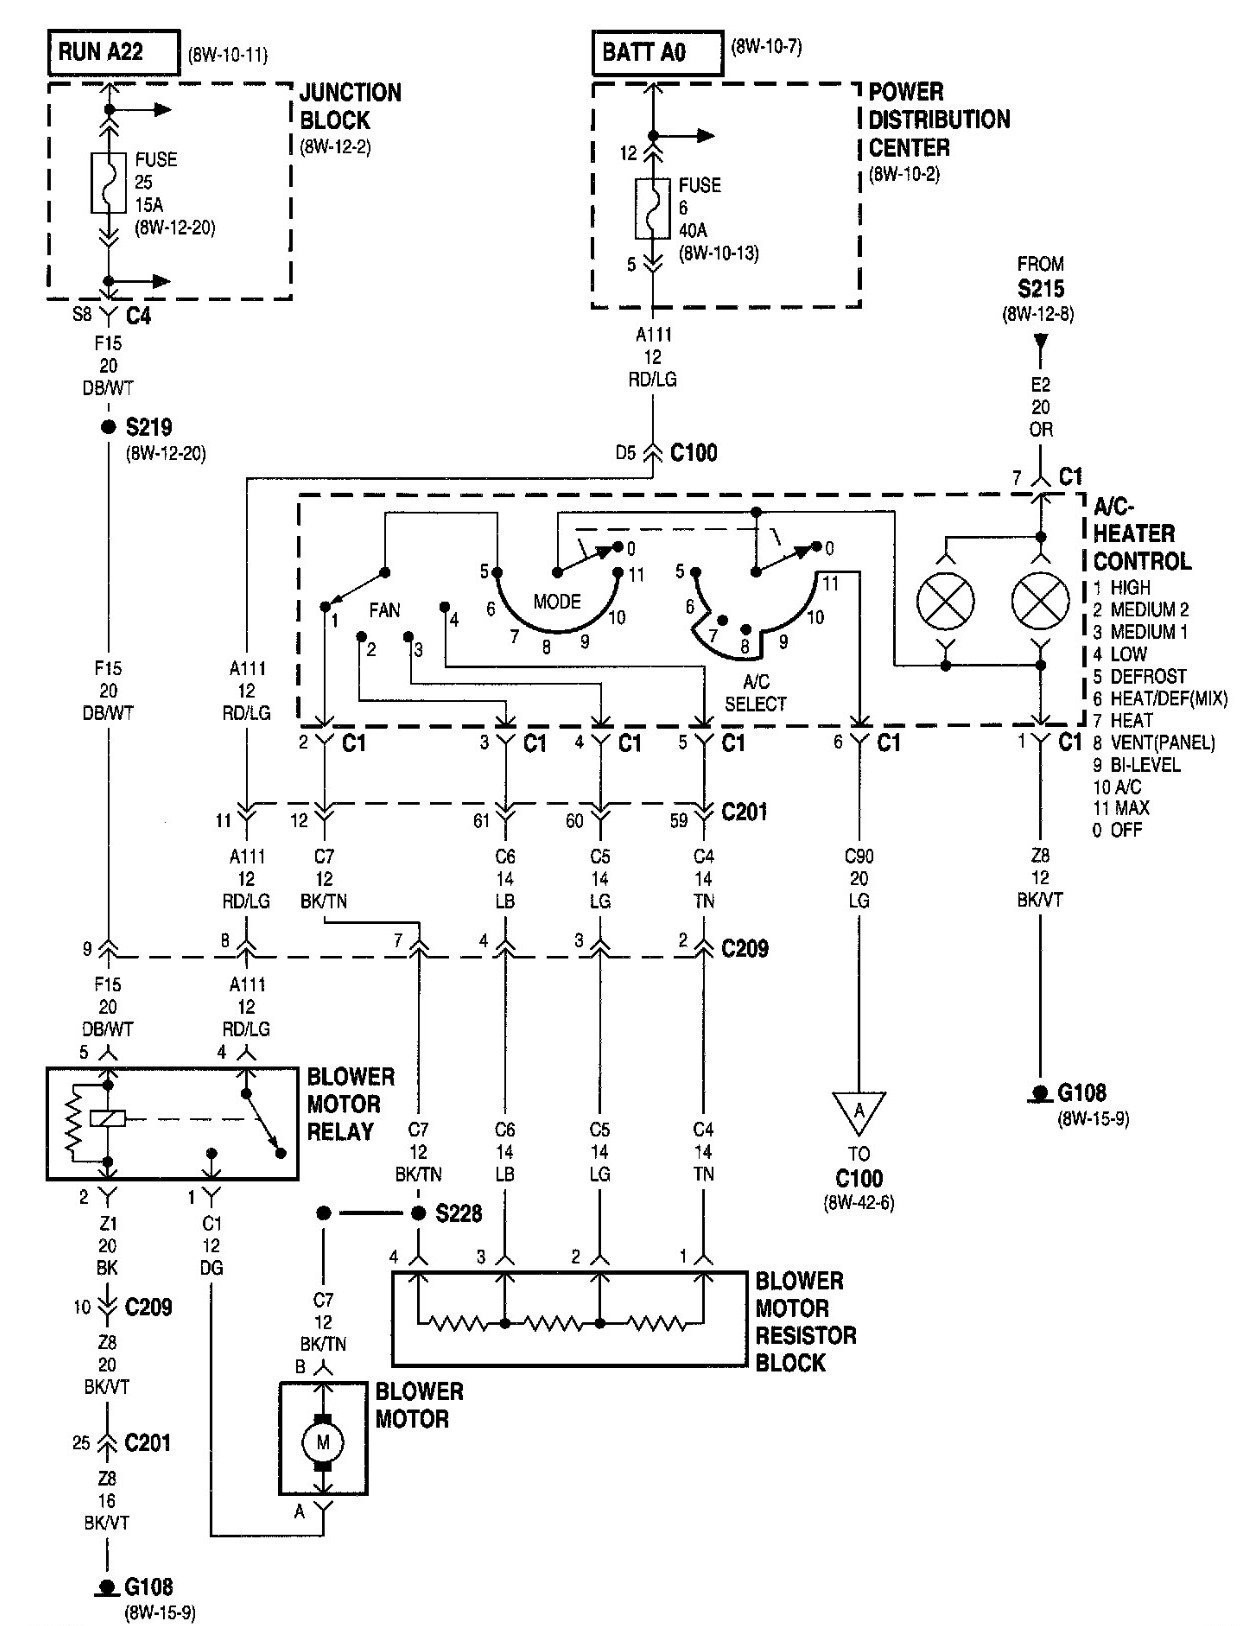 1996 jeep grand cherokee alarm wiring diagram Collection-98 Jeep Grand Cherokee Engine Wiring Diagram New Jeep Grand Cherokee Alarm Wiring Diagram Valid Wiring 8-t